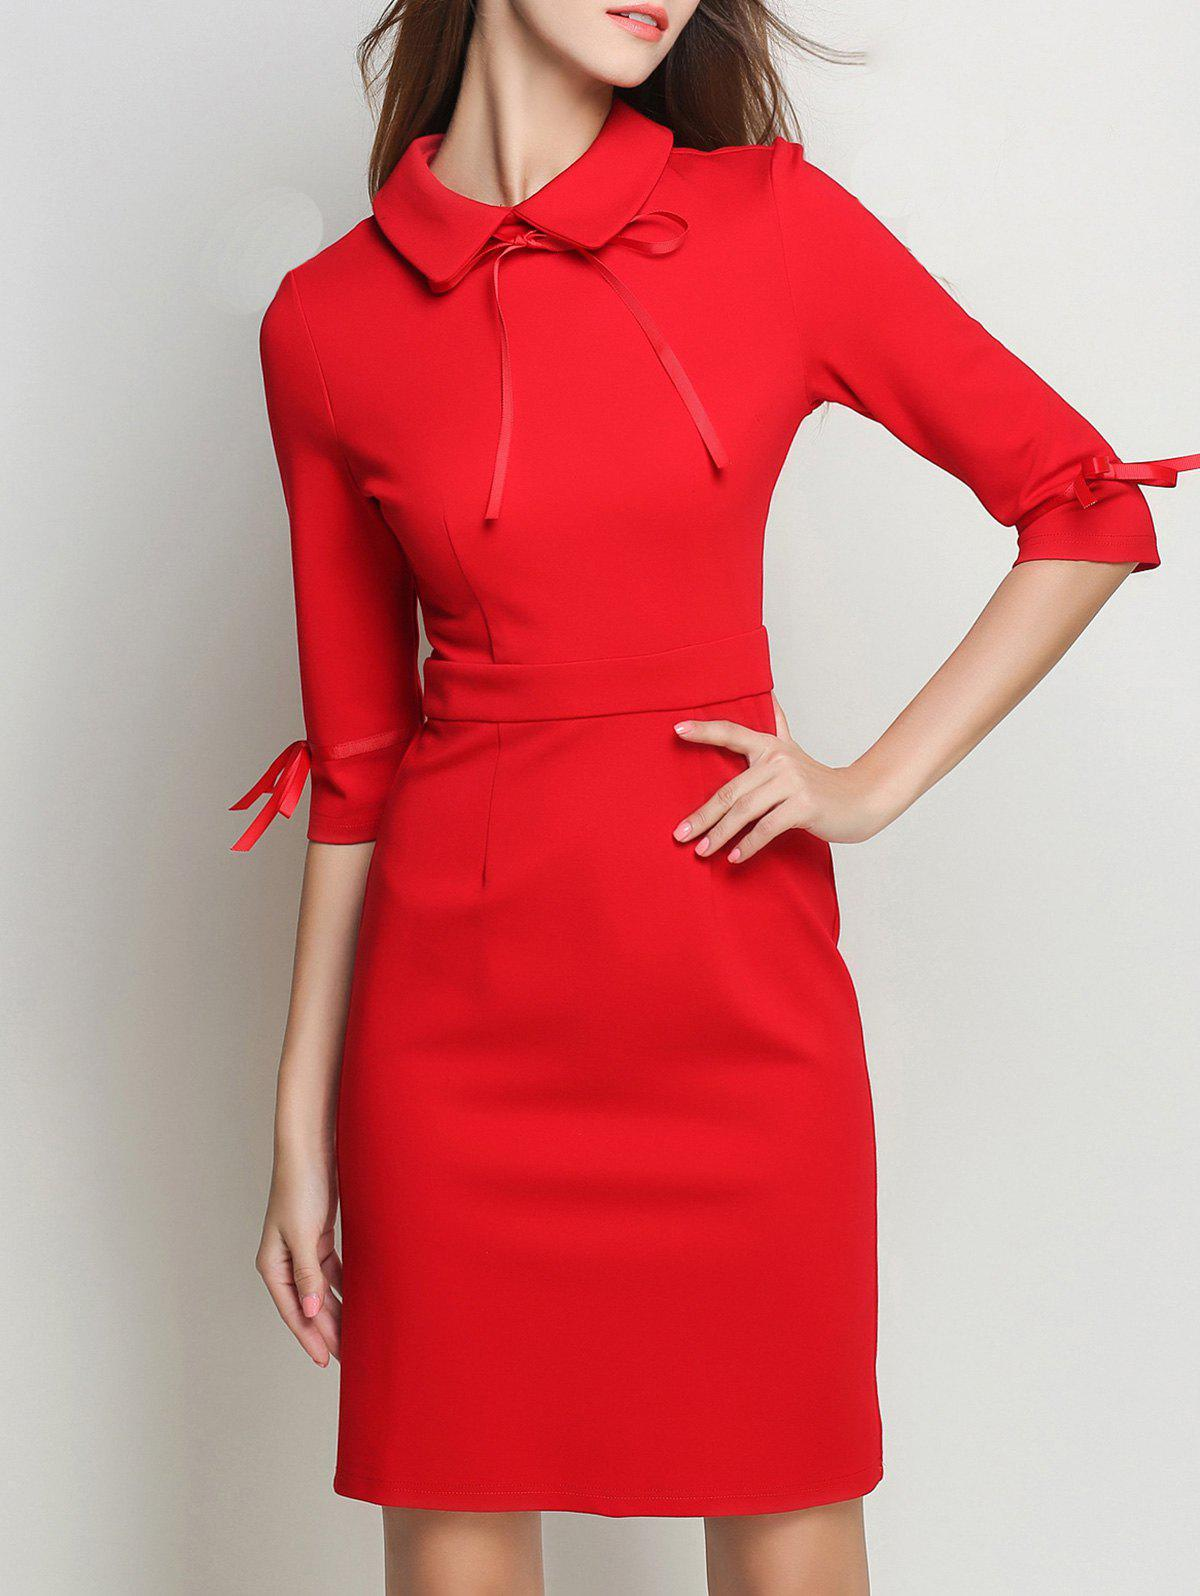 Store Bowknot Flat Collar Sheath Dress